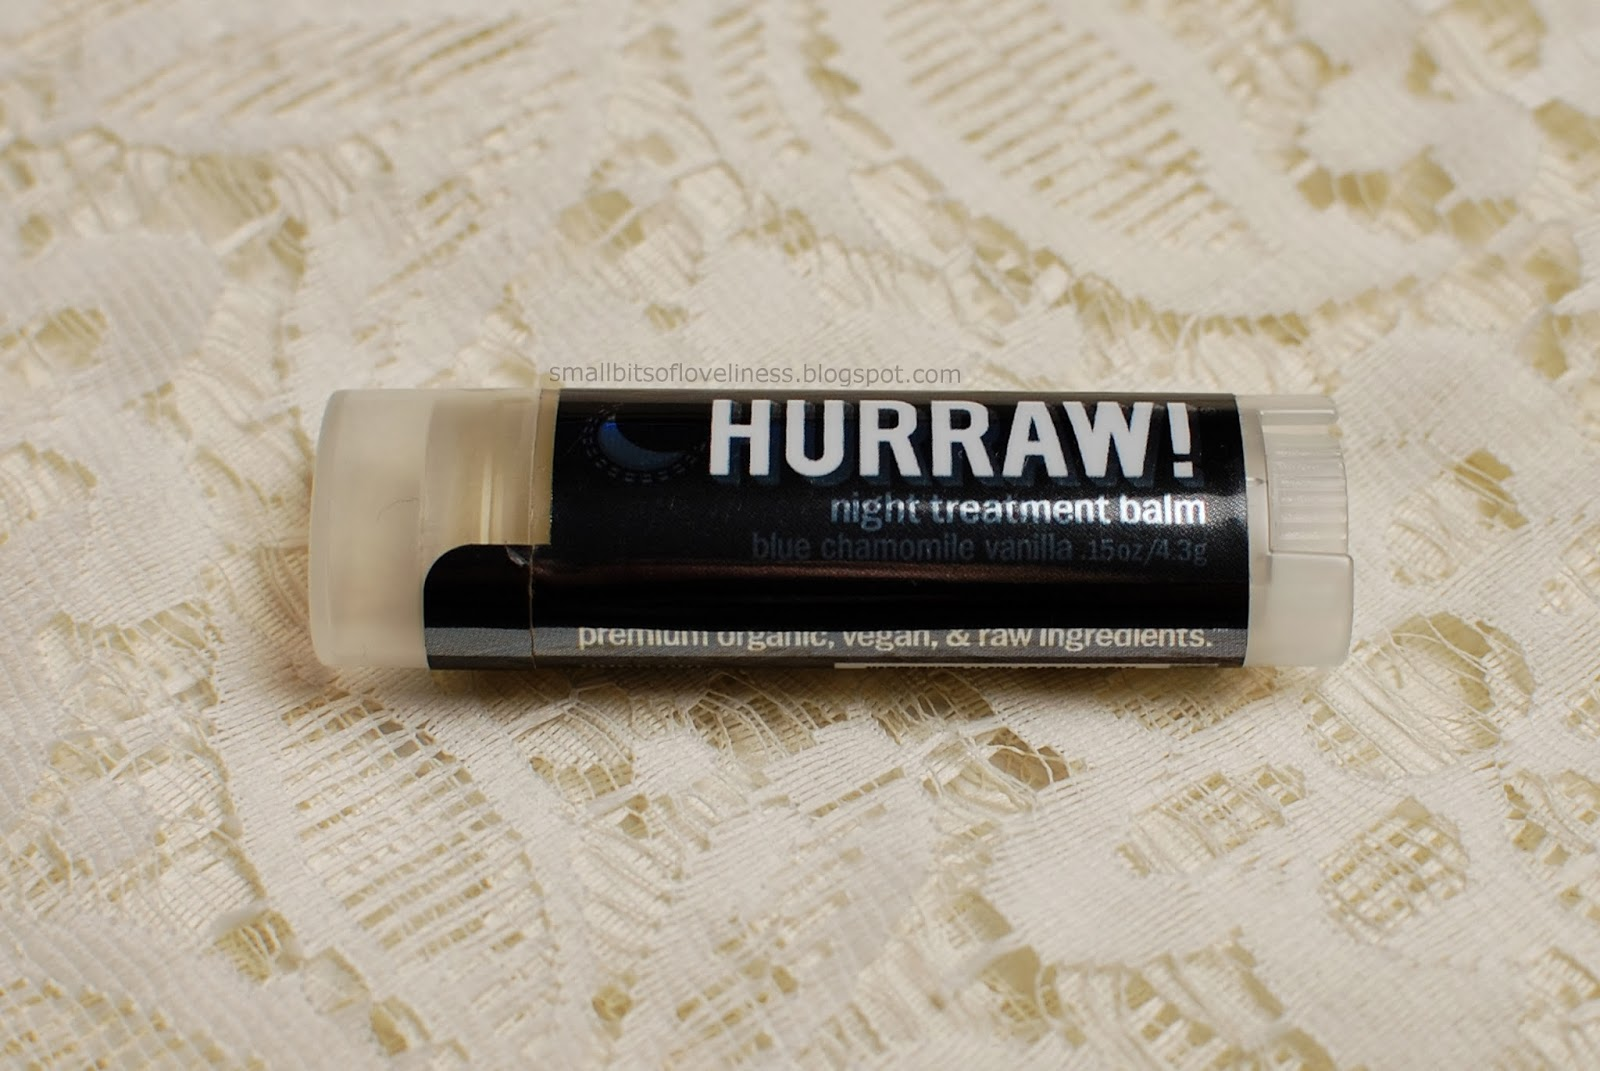 Hurraw Night Treatment Balm, Blue Chamomile Vanilla